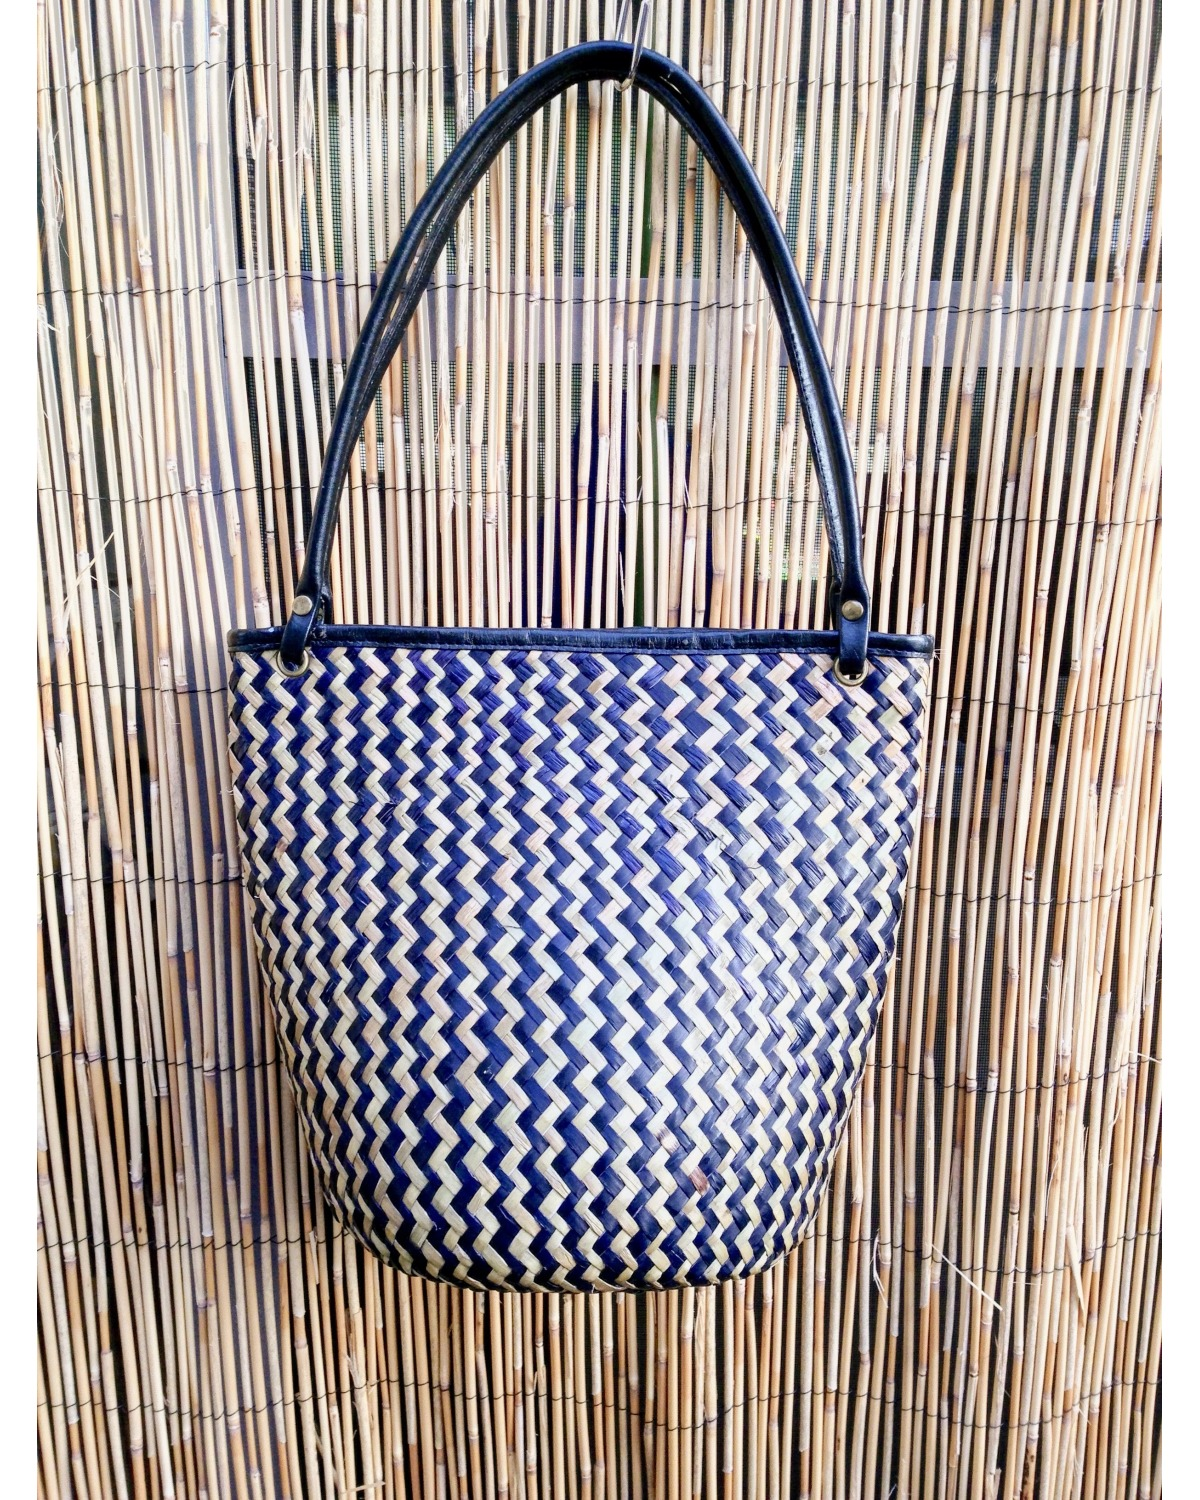 https://deanalan.us/2672-thickbox_default/bali-rattan-and-leather-shoulder-bag.jpg